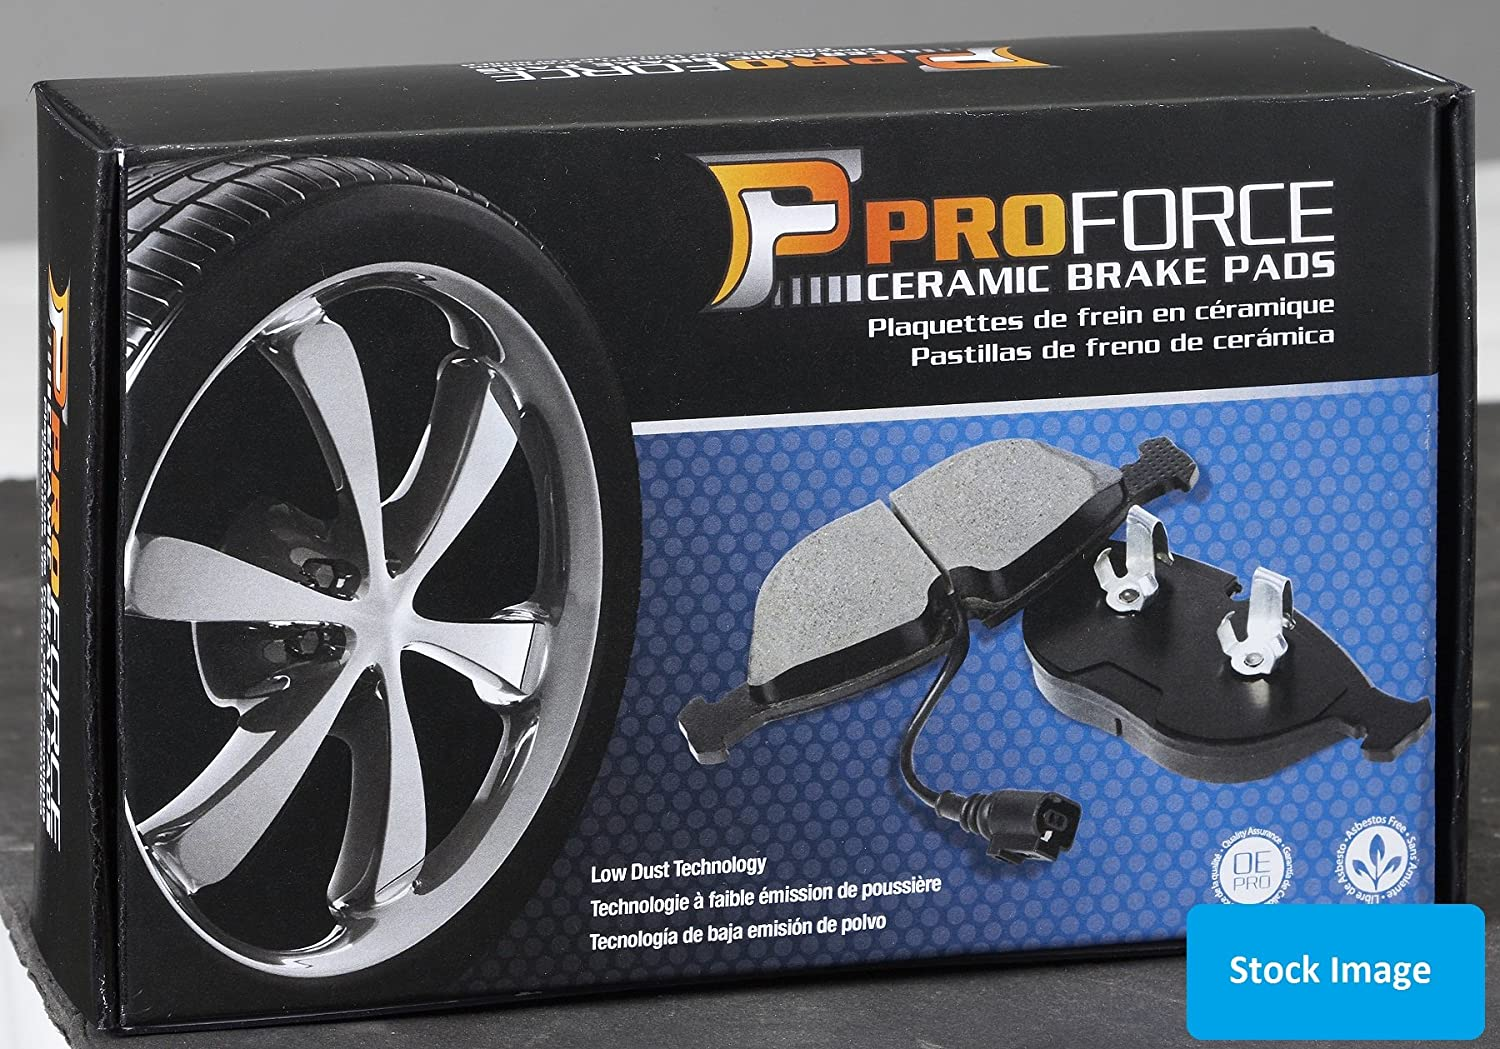 Stirling Ceramic Brake Pads with 2 Years Manufacturer Warranty Both Left and Right 2017 For Ford Escape Rear Set